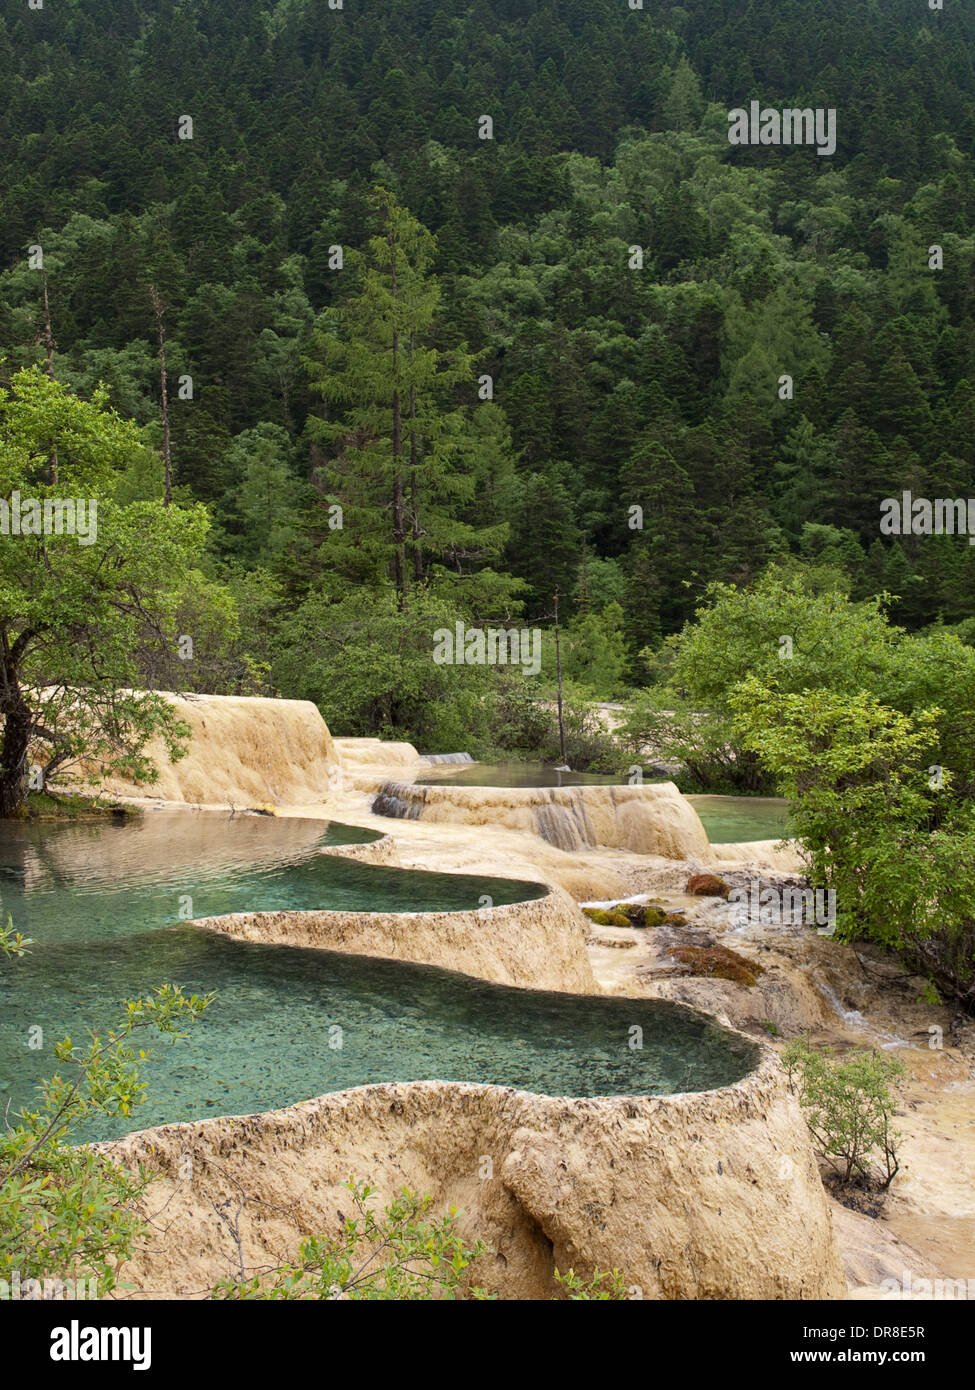 Rhododendron Pond in Huanglong, China - Stock Image